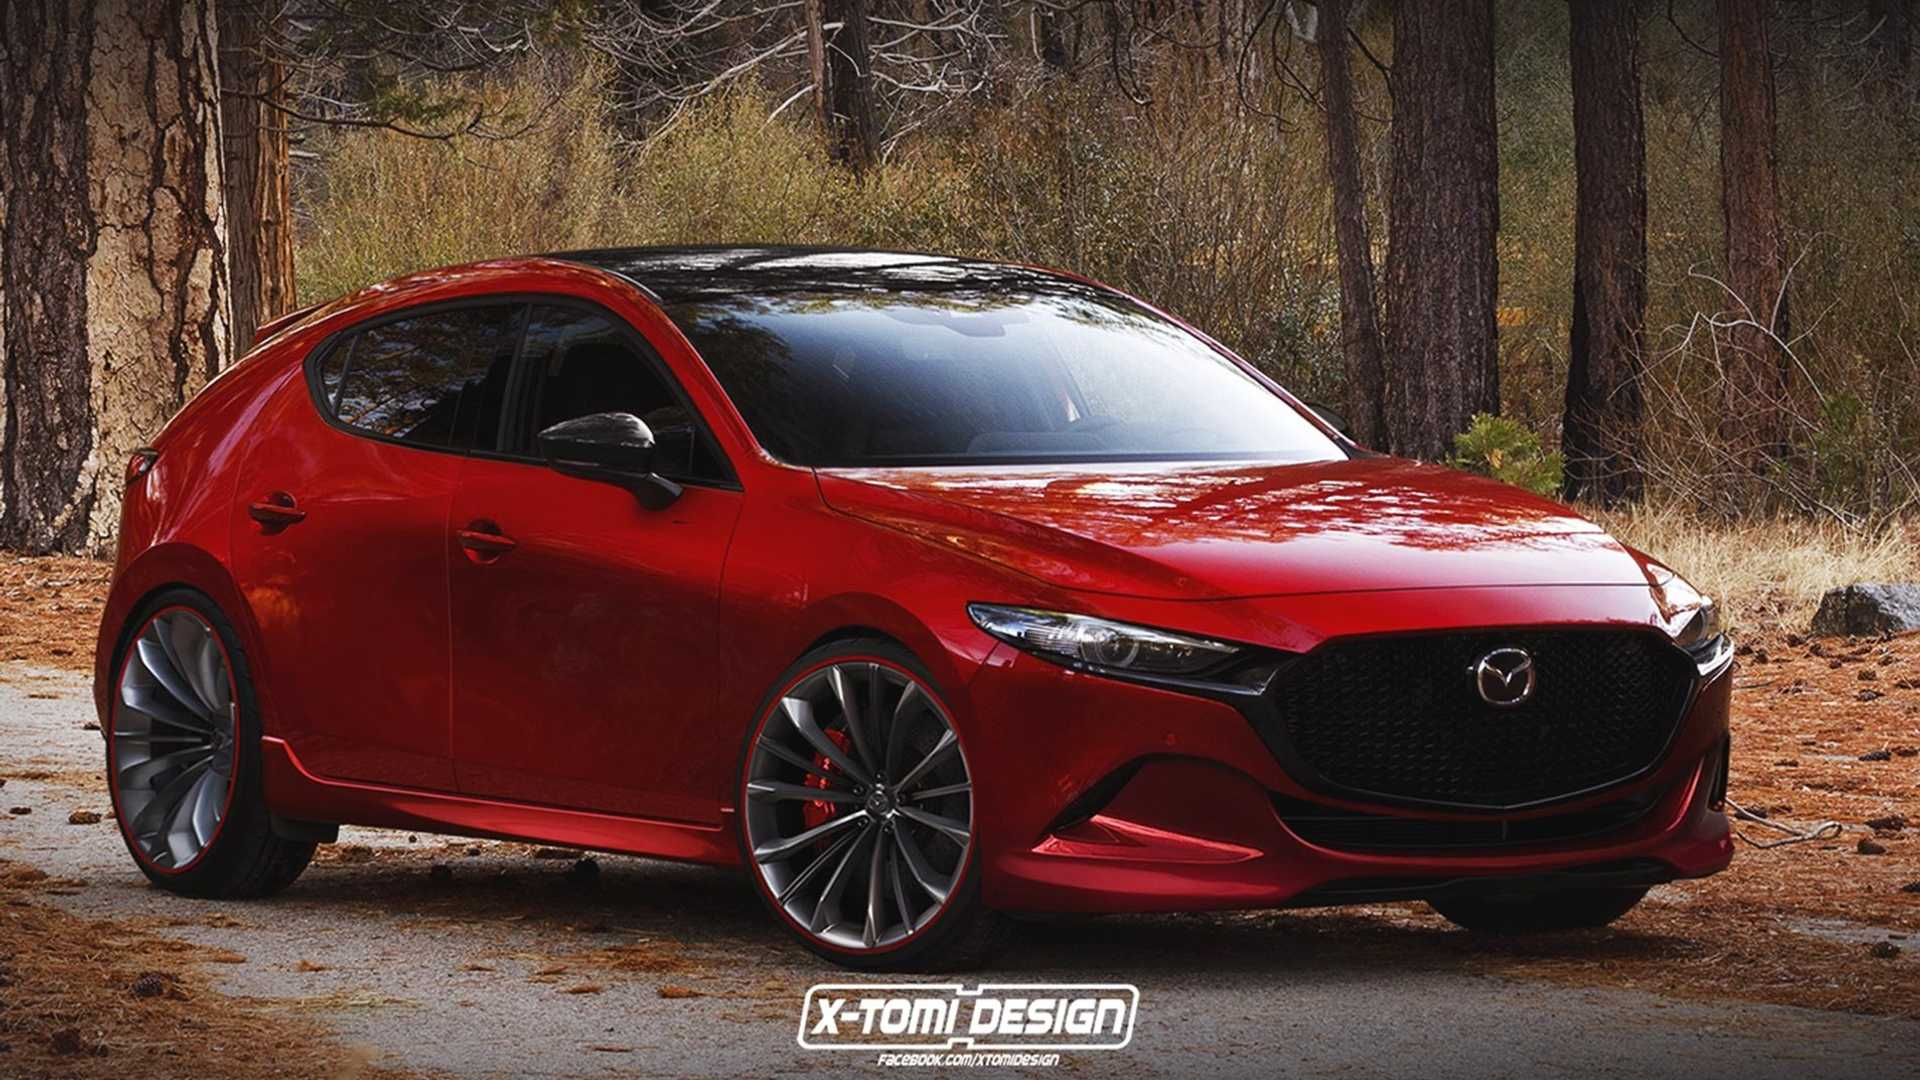 82 The Best 2019 Mazdaspeed 3 Reviews